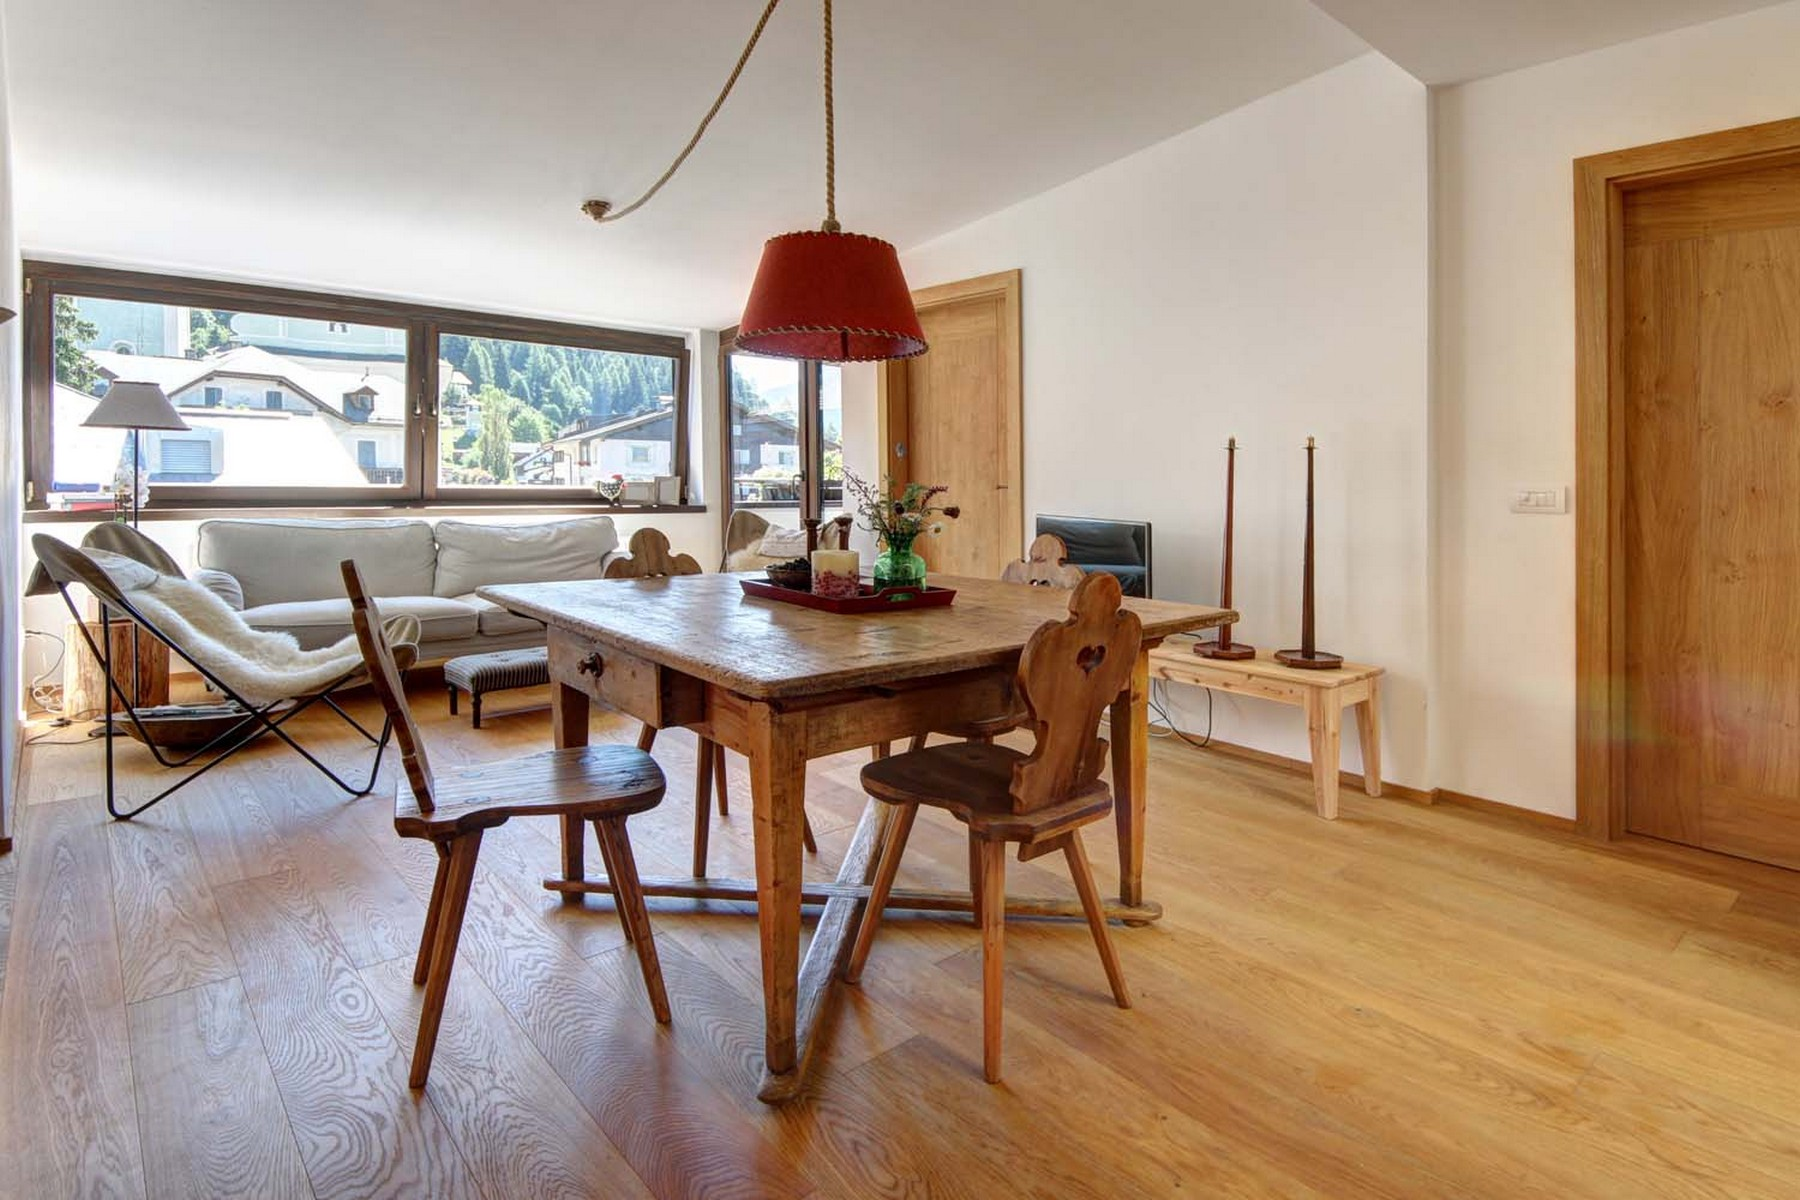 Apartment for Sale at Enchanting apartment totally restore Dobbiaco Dobbiaco Toblach, Bolzano 39034 Italy